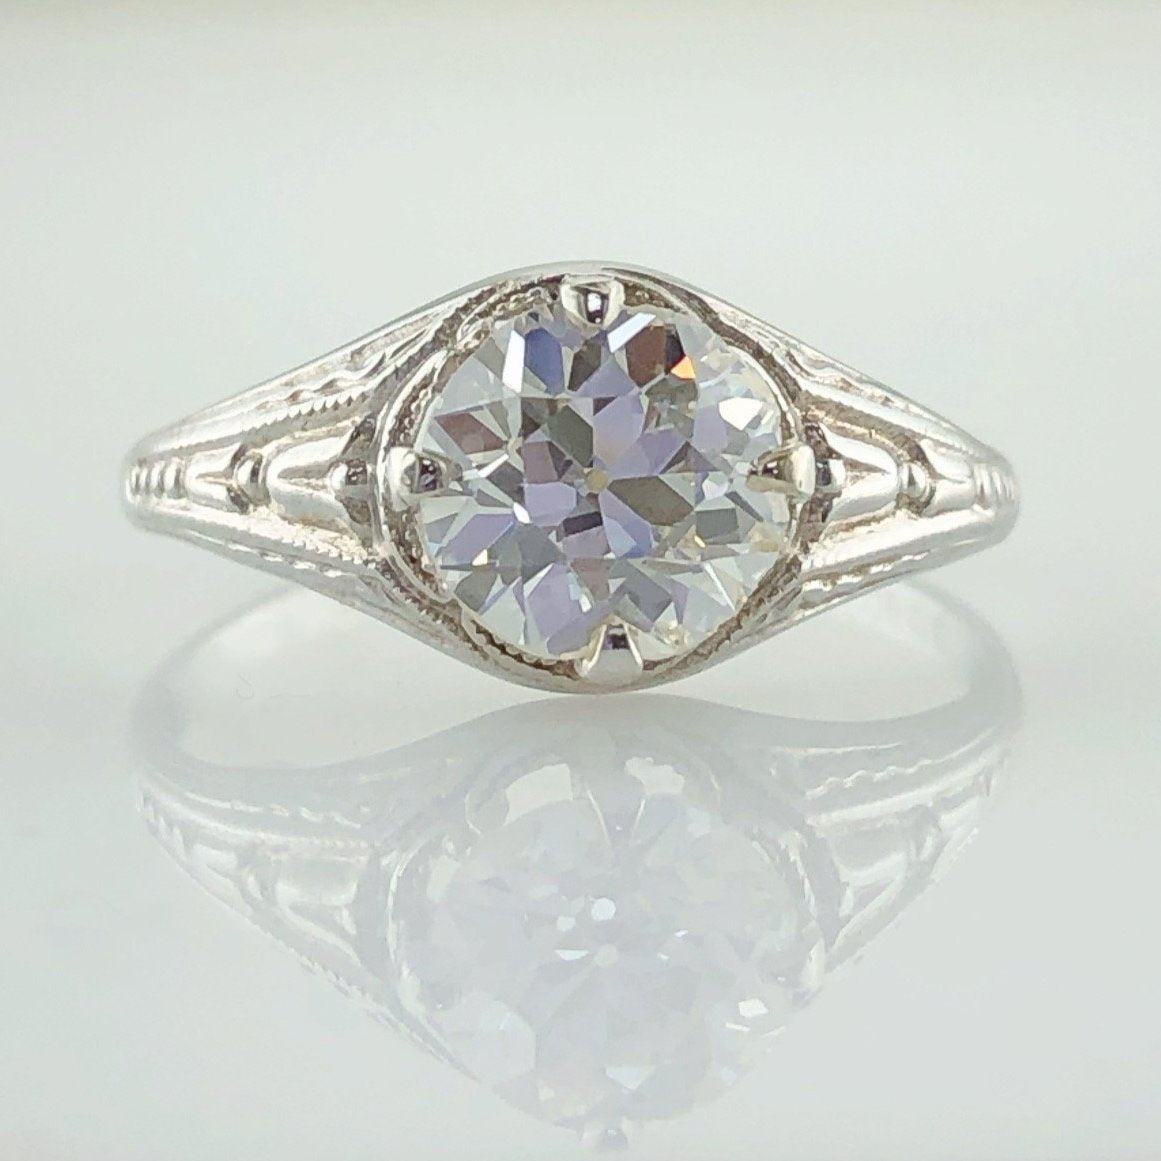 1.30ct old European cut antique diamond ring in 10K white gold.